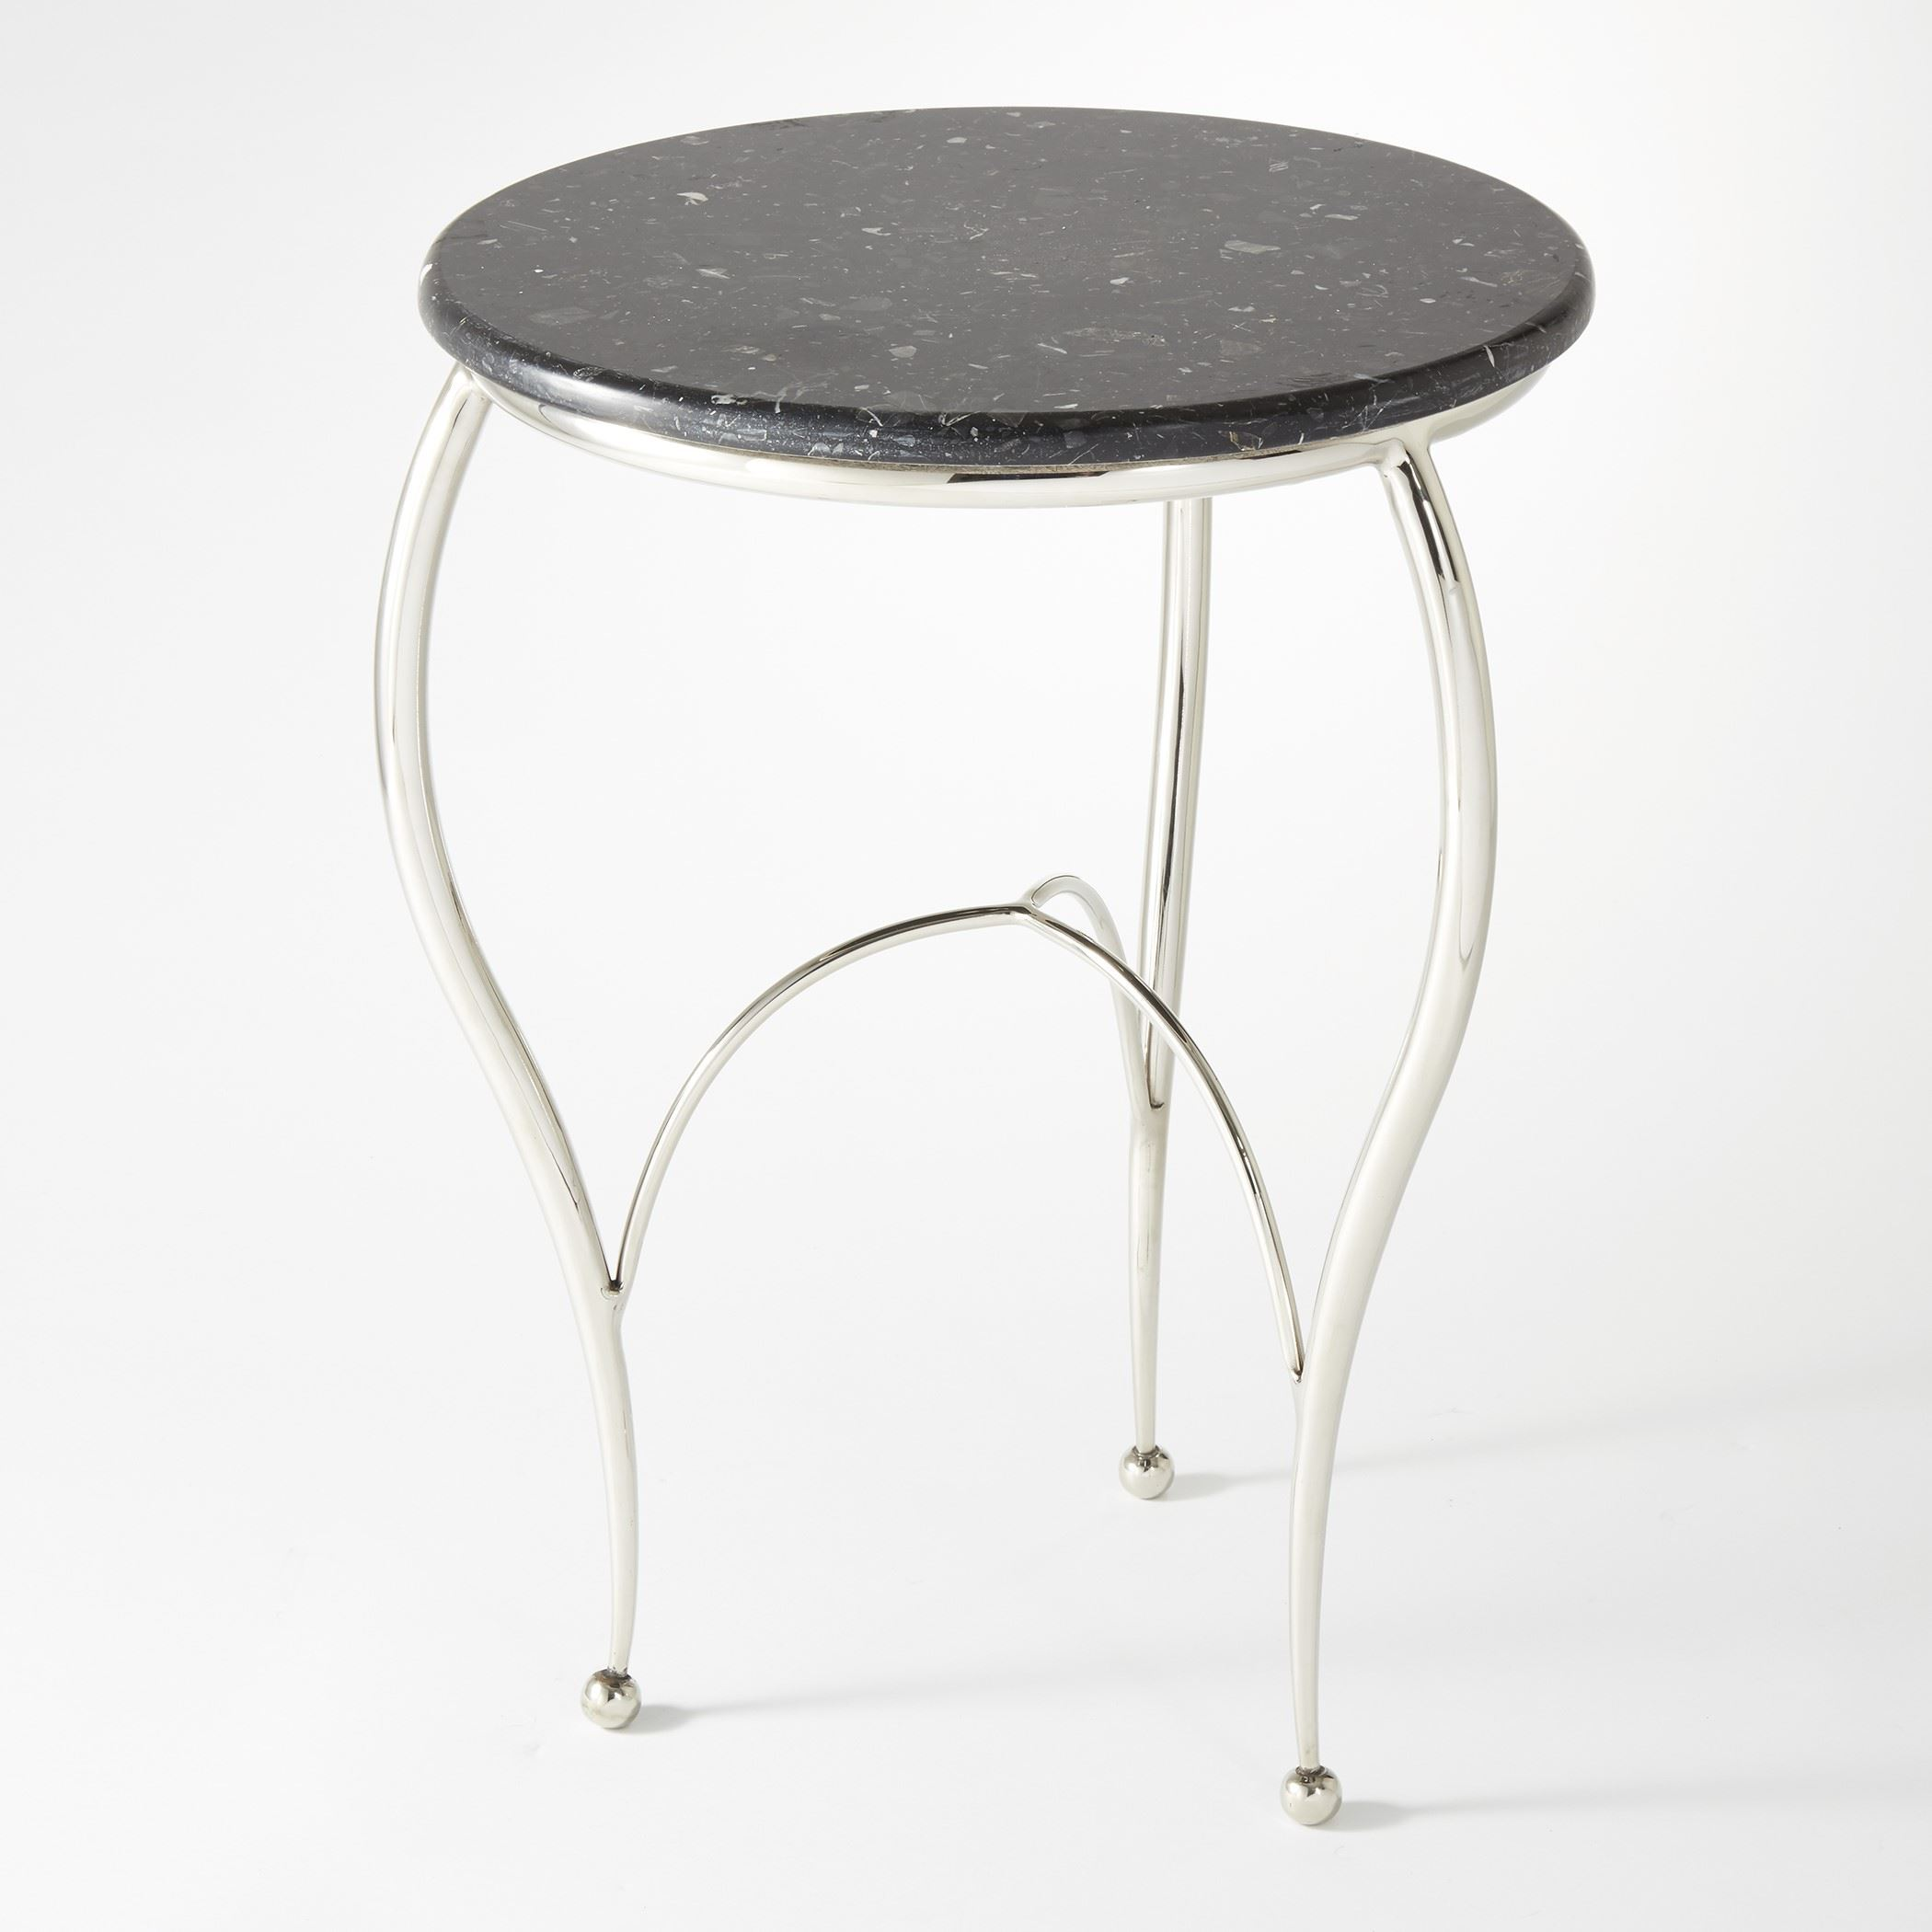 diminutive contemporary nickel and black marble round accent table special this graceful yellow home decor plastic side glass corner white coffee with drawers accents vintage